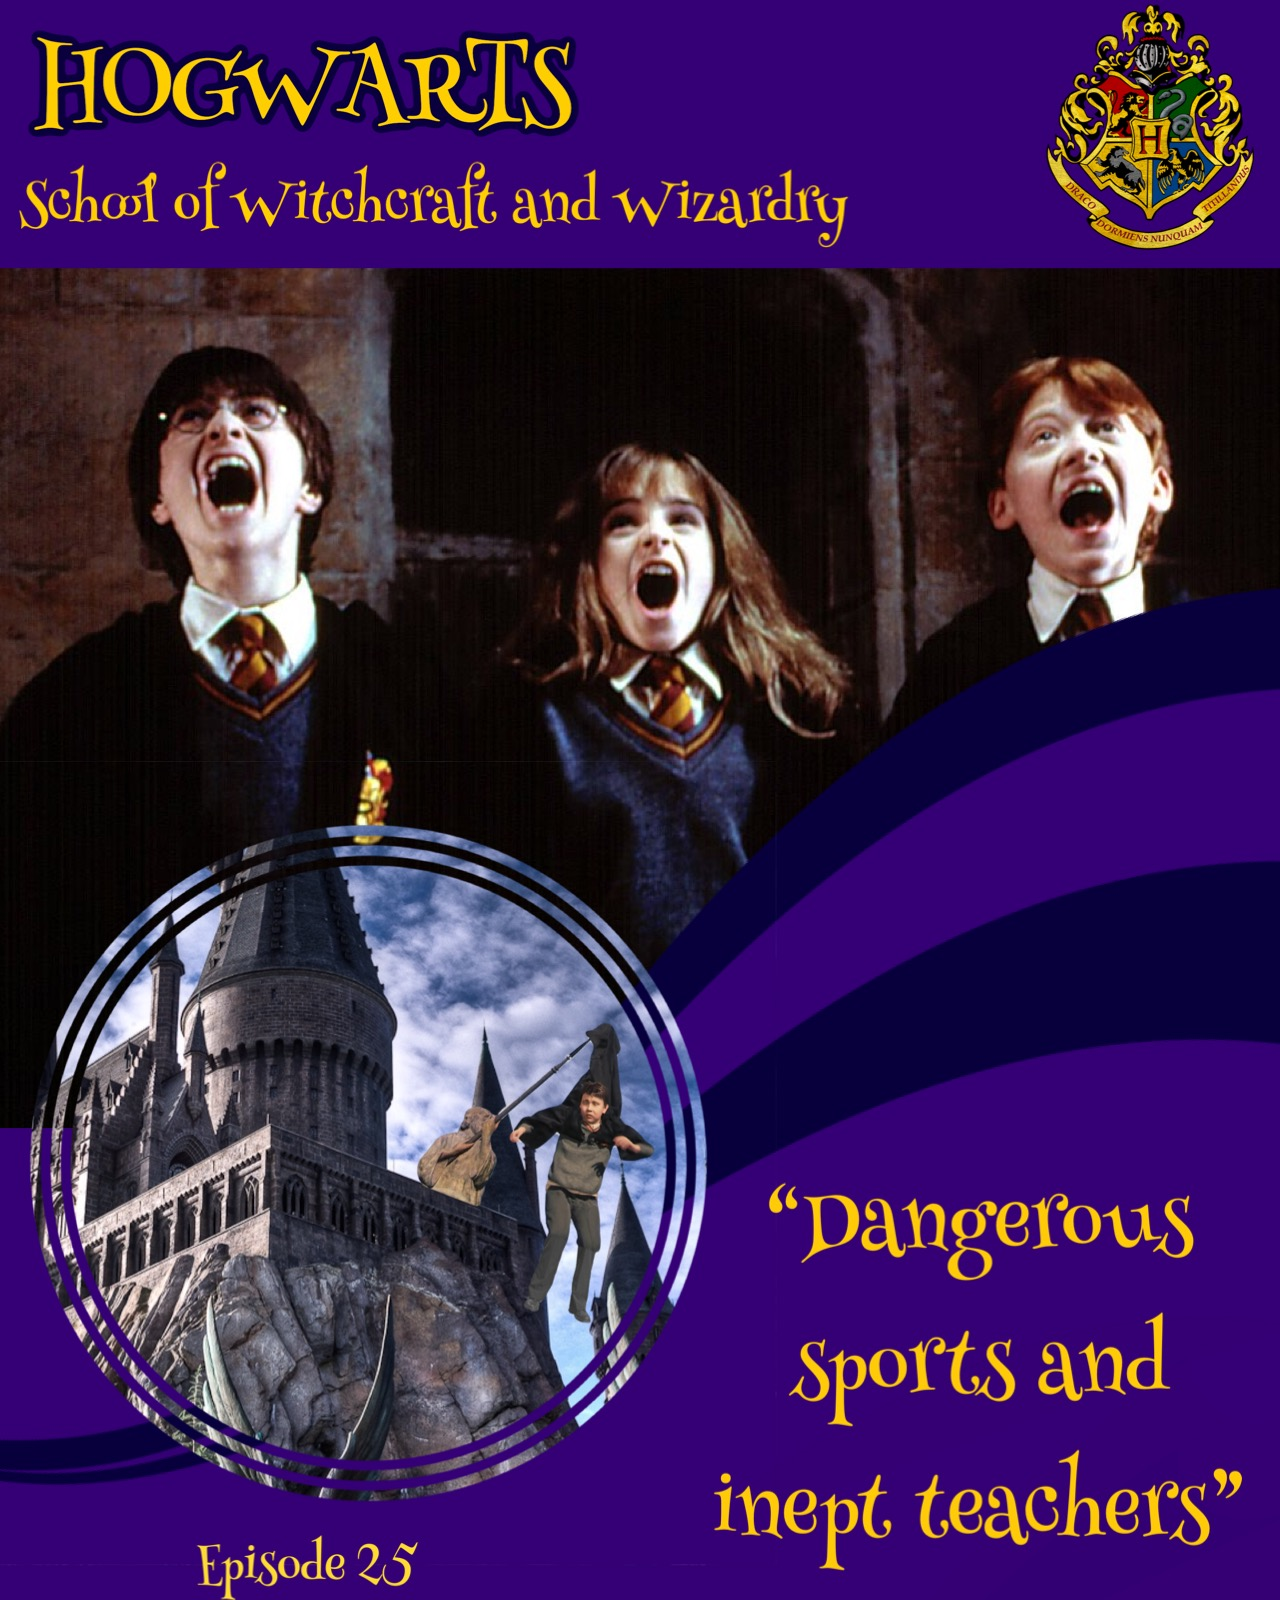 "A brochure for Hogwarts: The background is royal purple and two navy blue swooping stripes divide it near the halfway mark. Across the top it reads ""Hogwarts School of Witchcraft and Wizardry"" with the Hogwarts crest in the right corner. Below this is an image of Harry, Hermione, and Ron looking terrified. Overlaid towards the bottom left of the image is a round image of the exterior of Hogwarts and Neville can be seen dangling by his robes from the spear of a statue. At the bottom right, as if it were a promotional saying, are the words, ""Dangerous sports and inept teachers."""